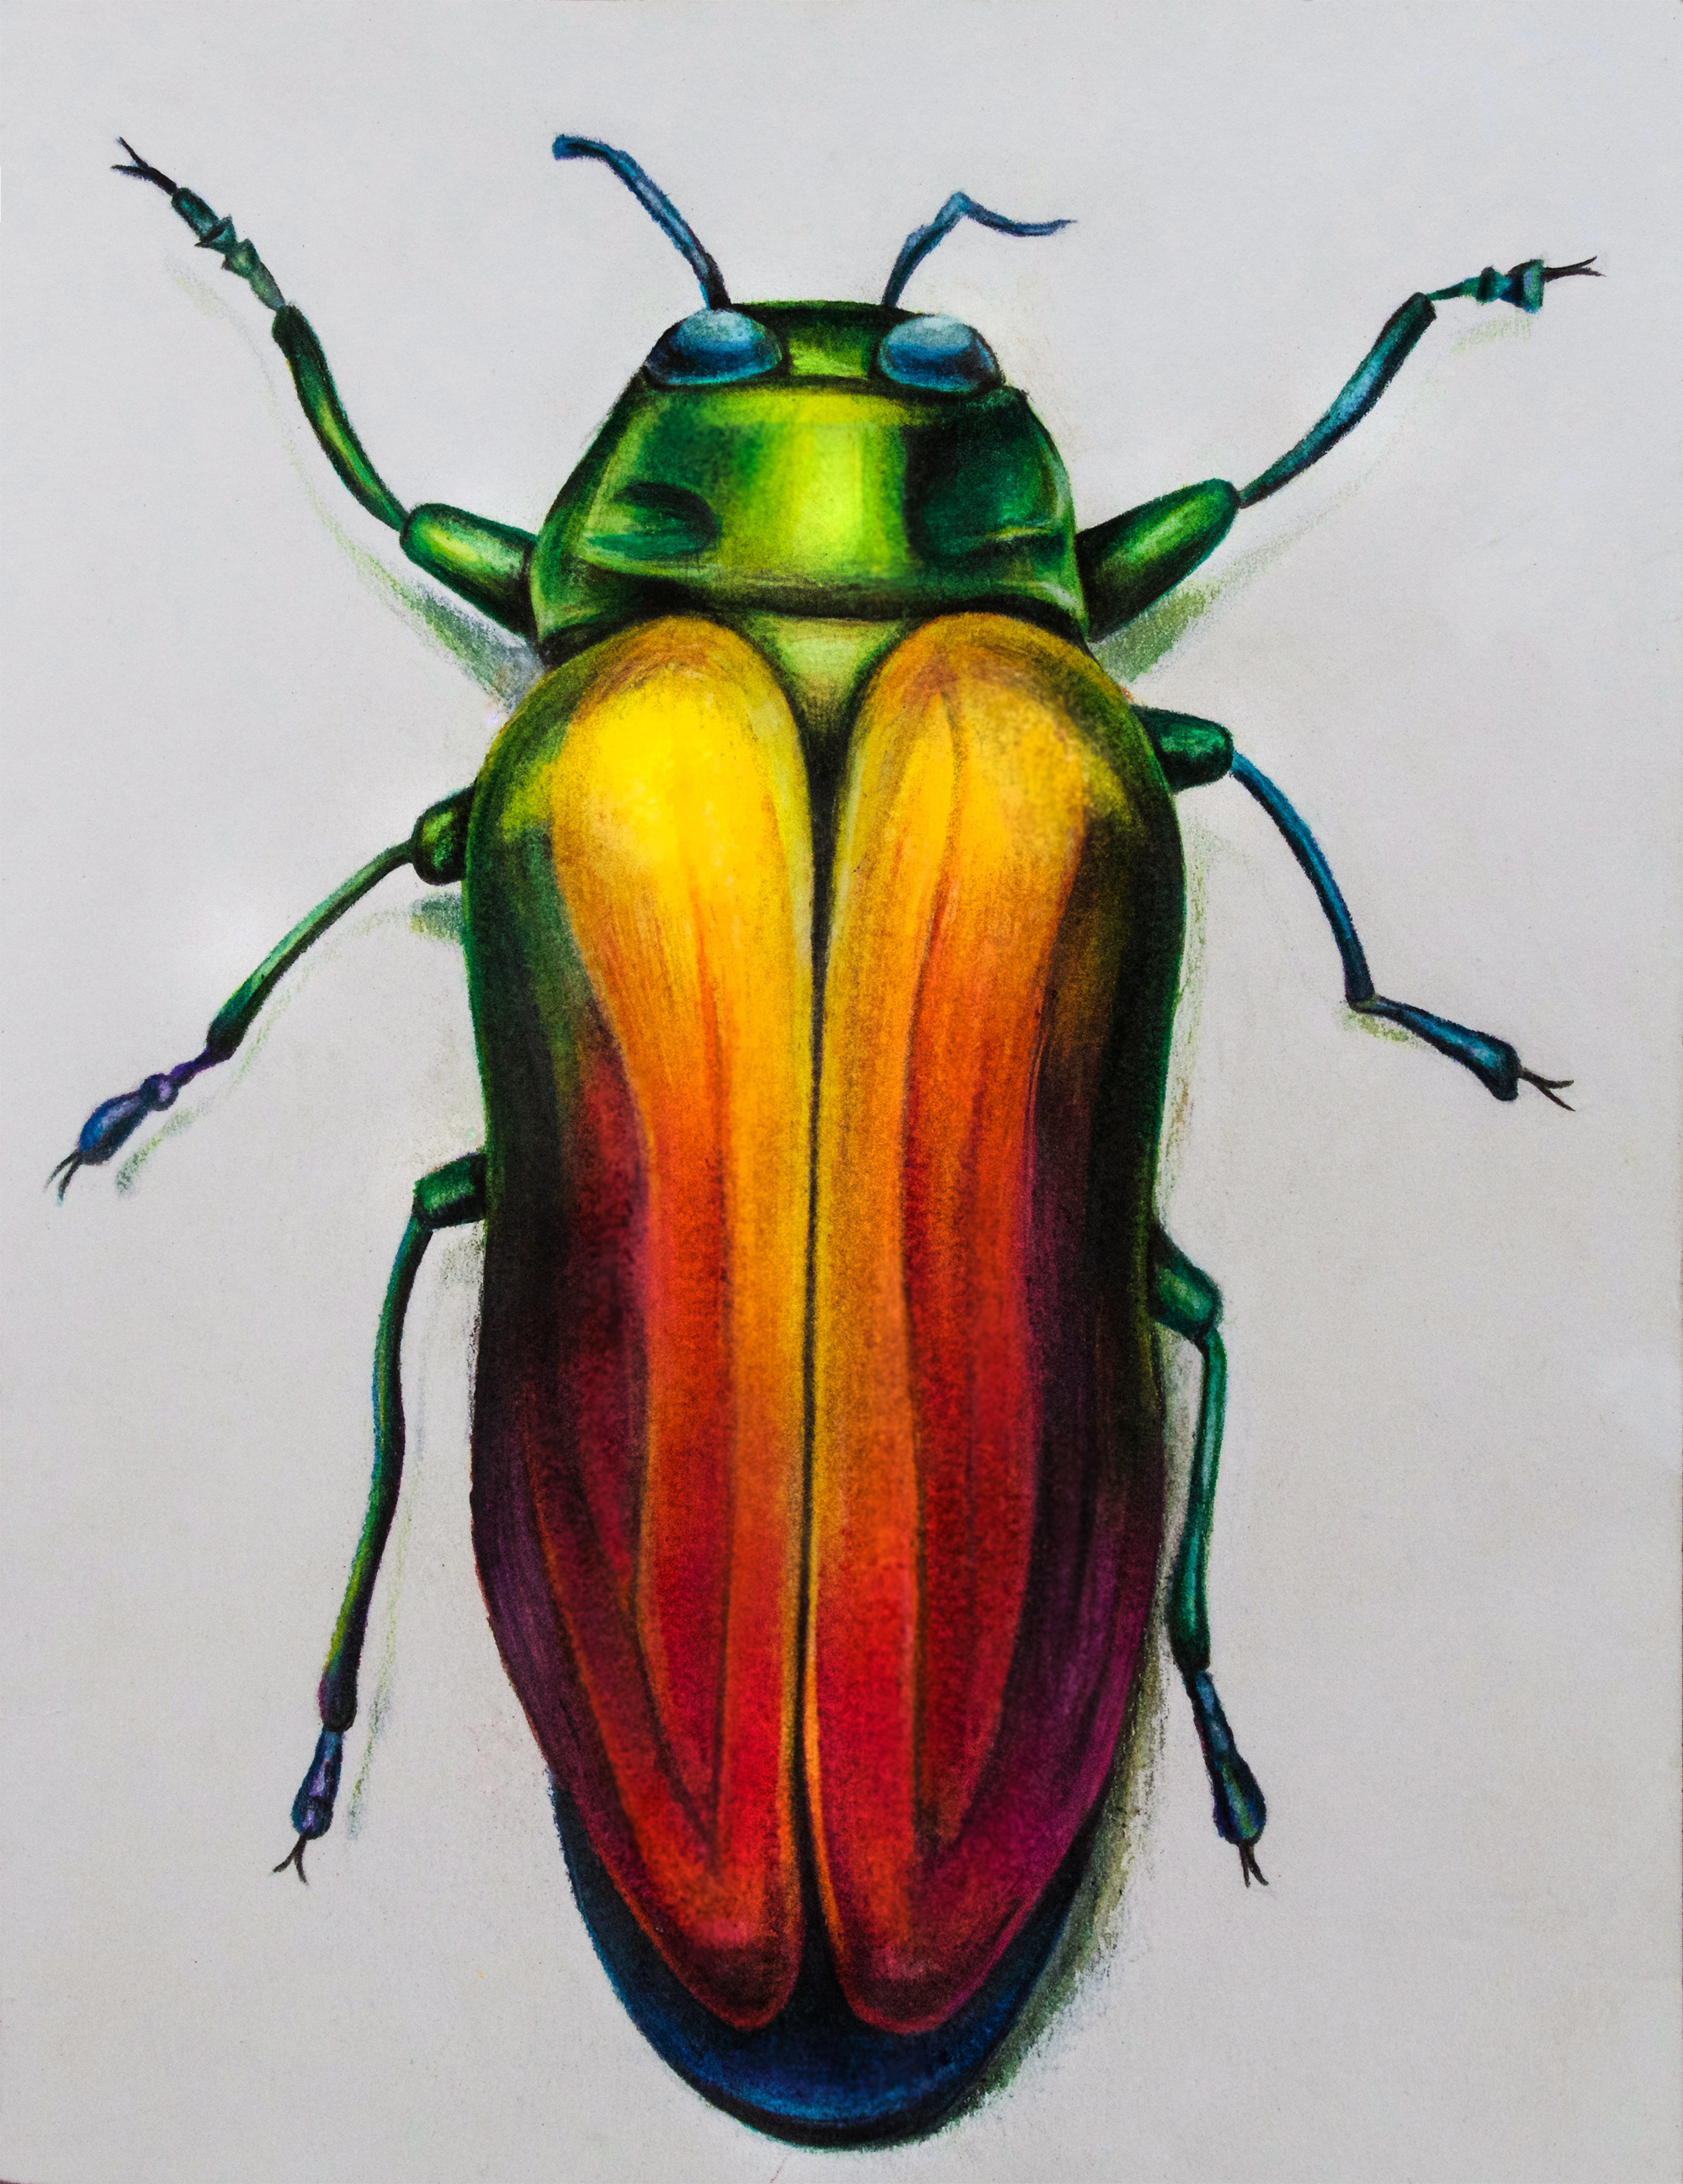 Rainbow Beetle, 2017, colored pencils on paper, 8.5x11""